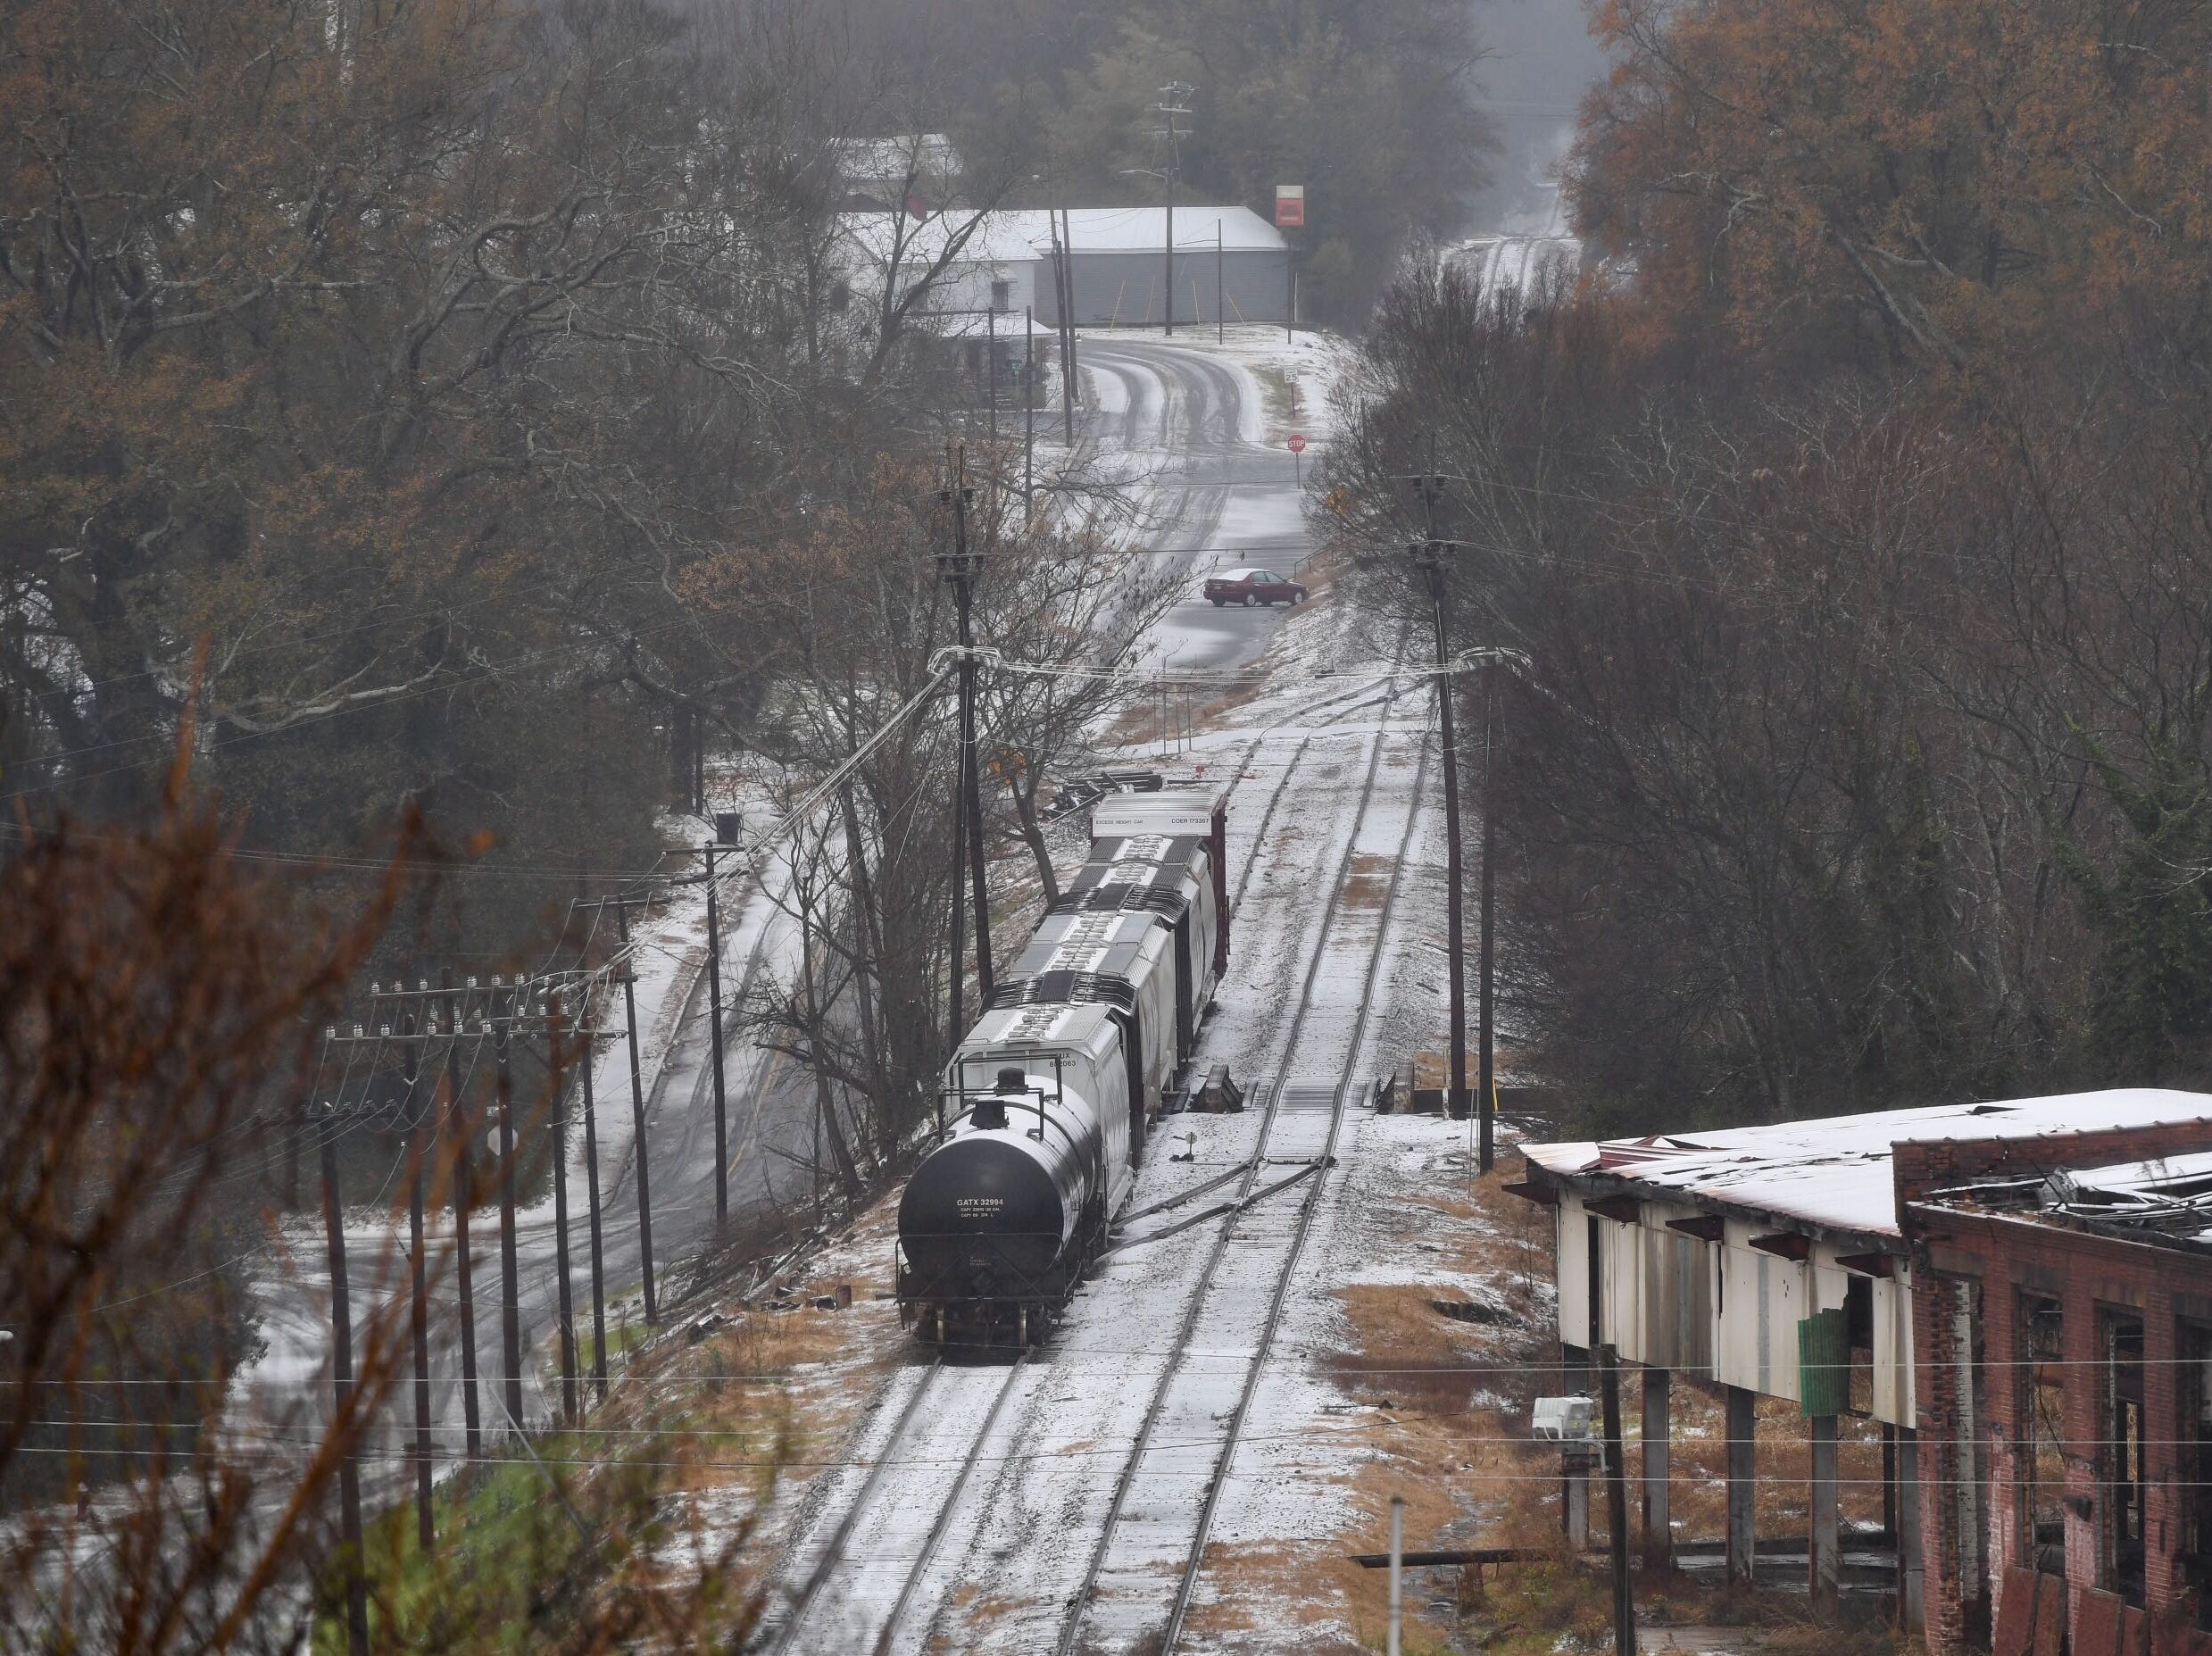 Pickens Railroad on Sunday, Dec. 9, 2018.